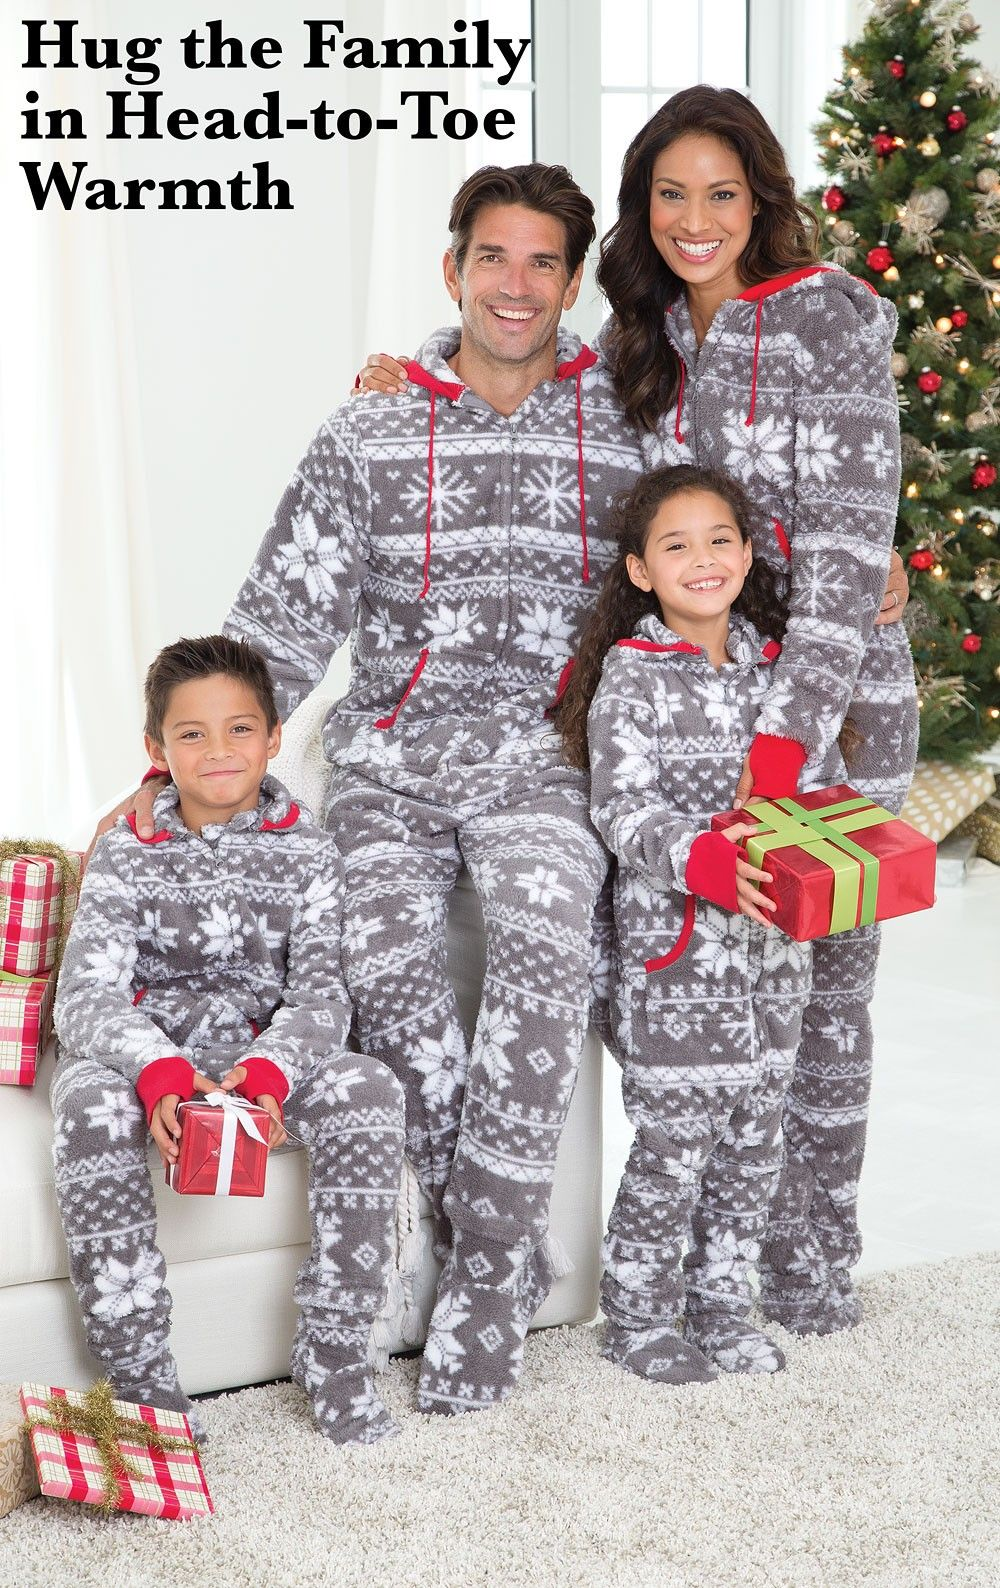 HoodieFootie™ Matching Family Pajamas Nordic Fleece in